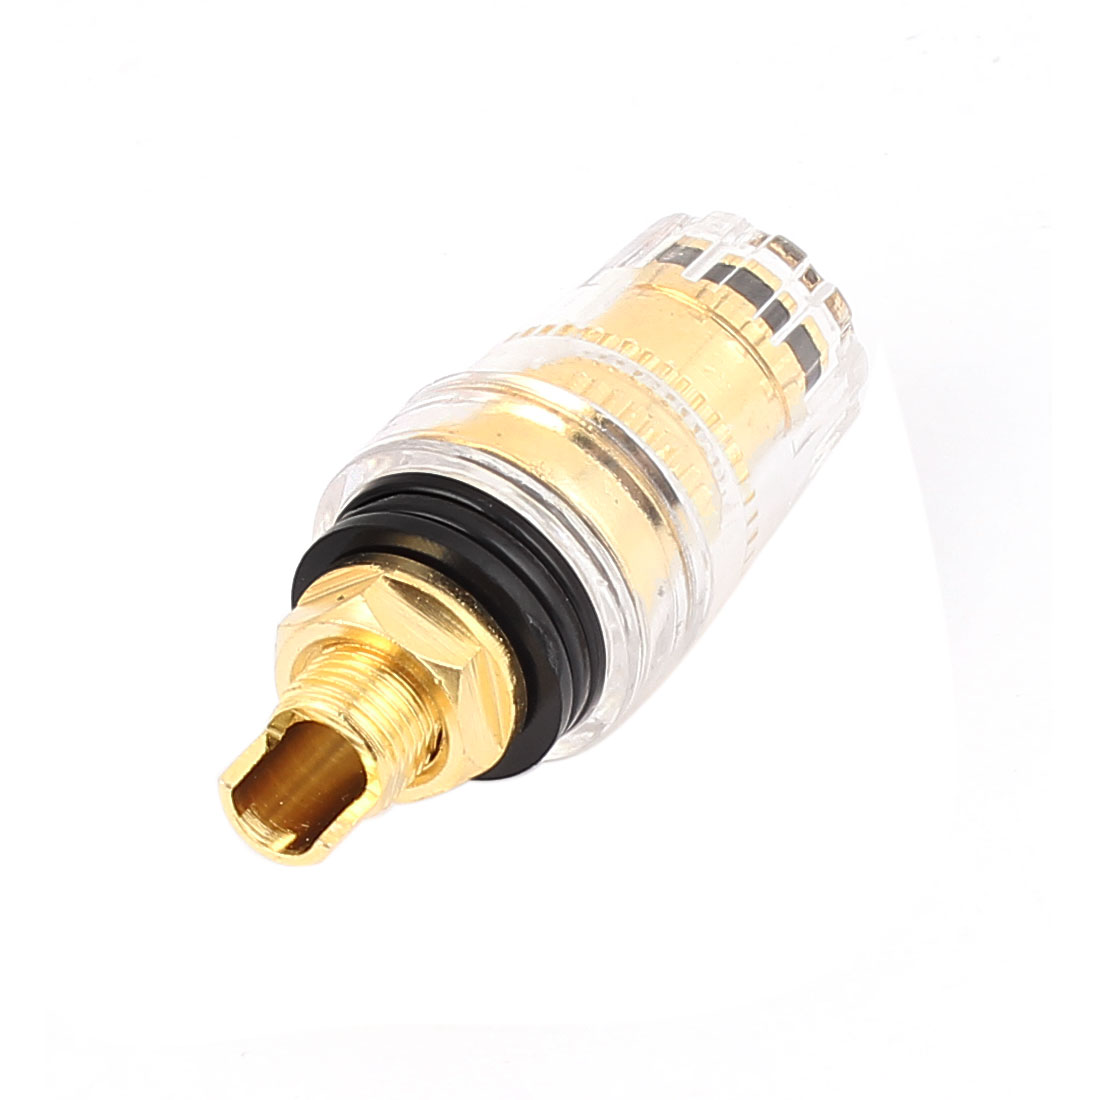 Binding Post for Amplifier Speaker 4mm Banana plug connector Black Gold Tone